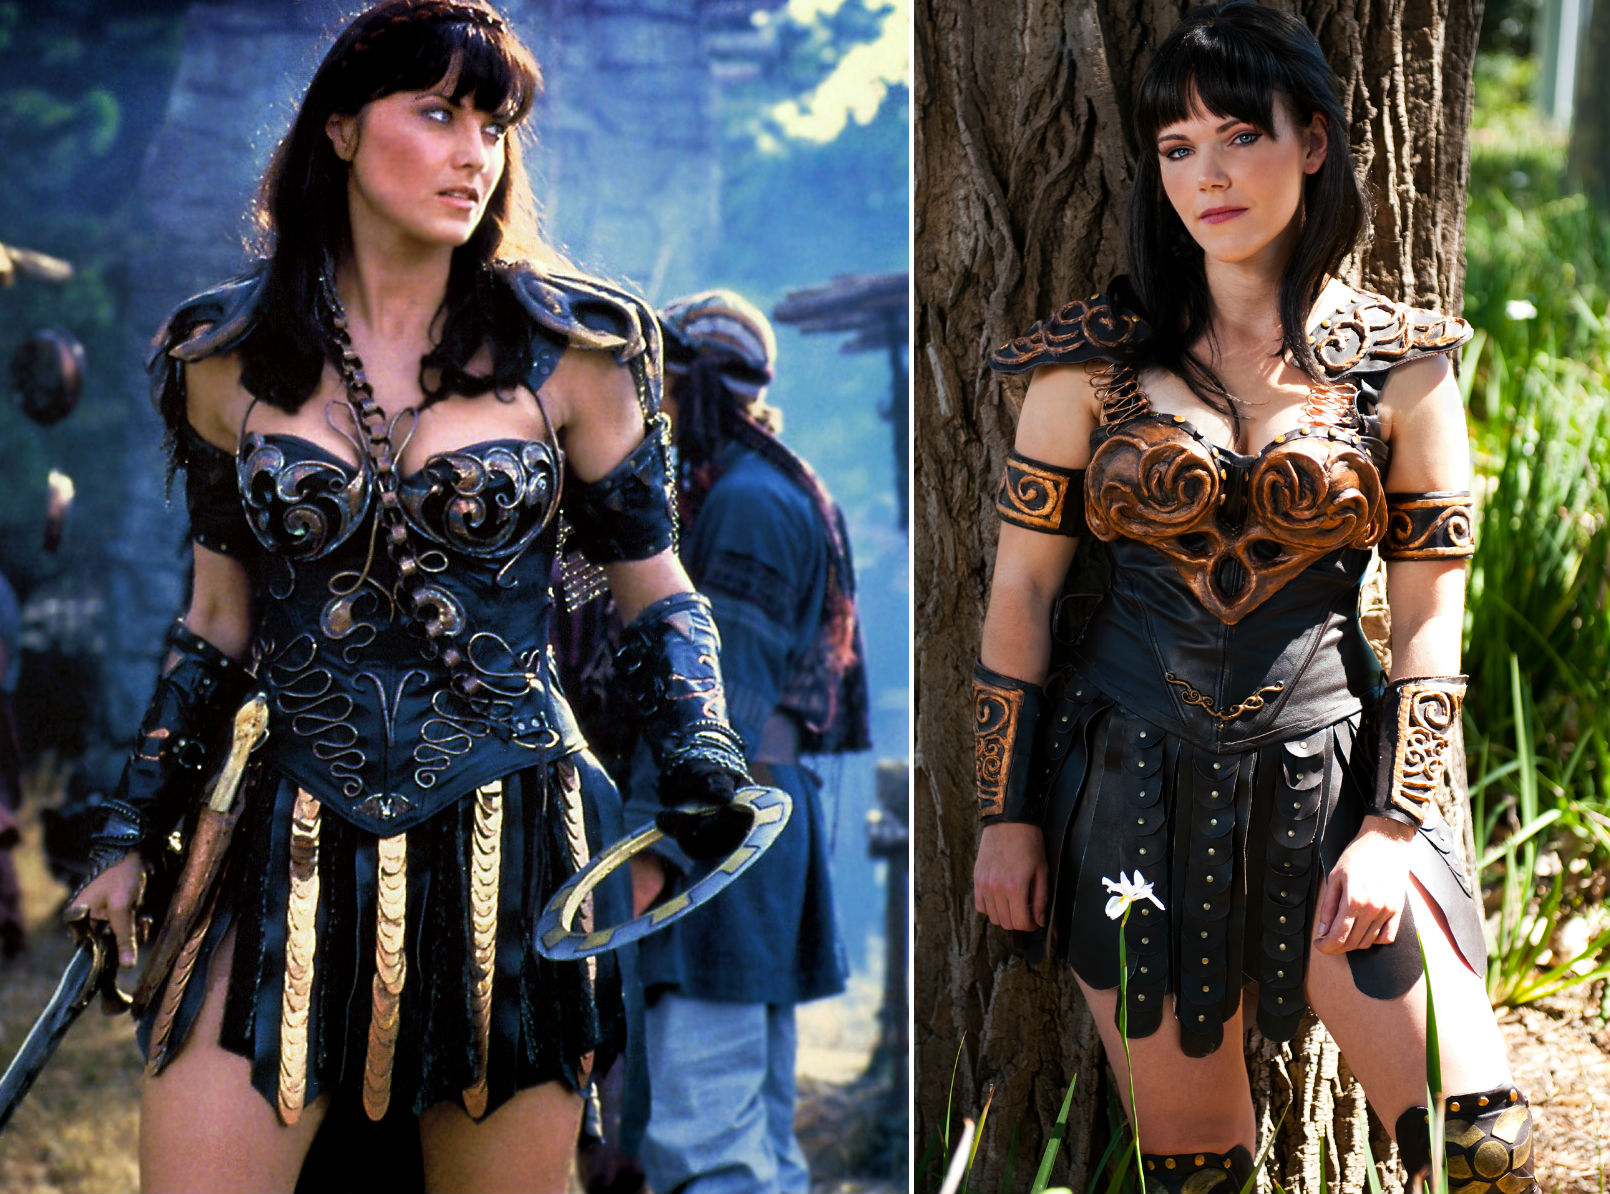 8. Xena from Xena Warrior Princess